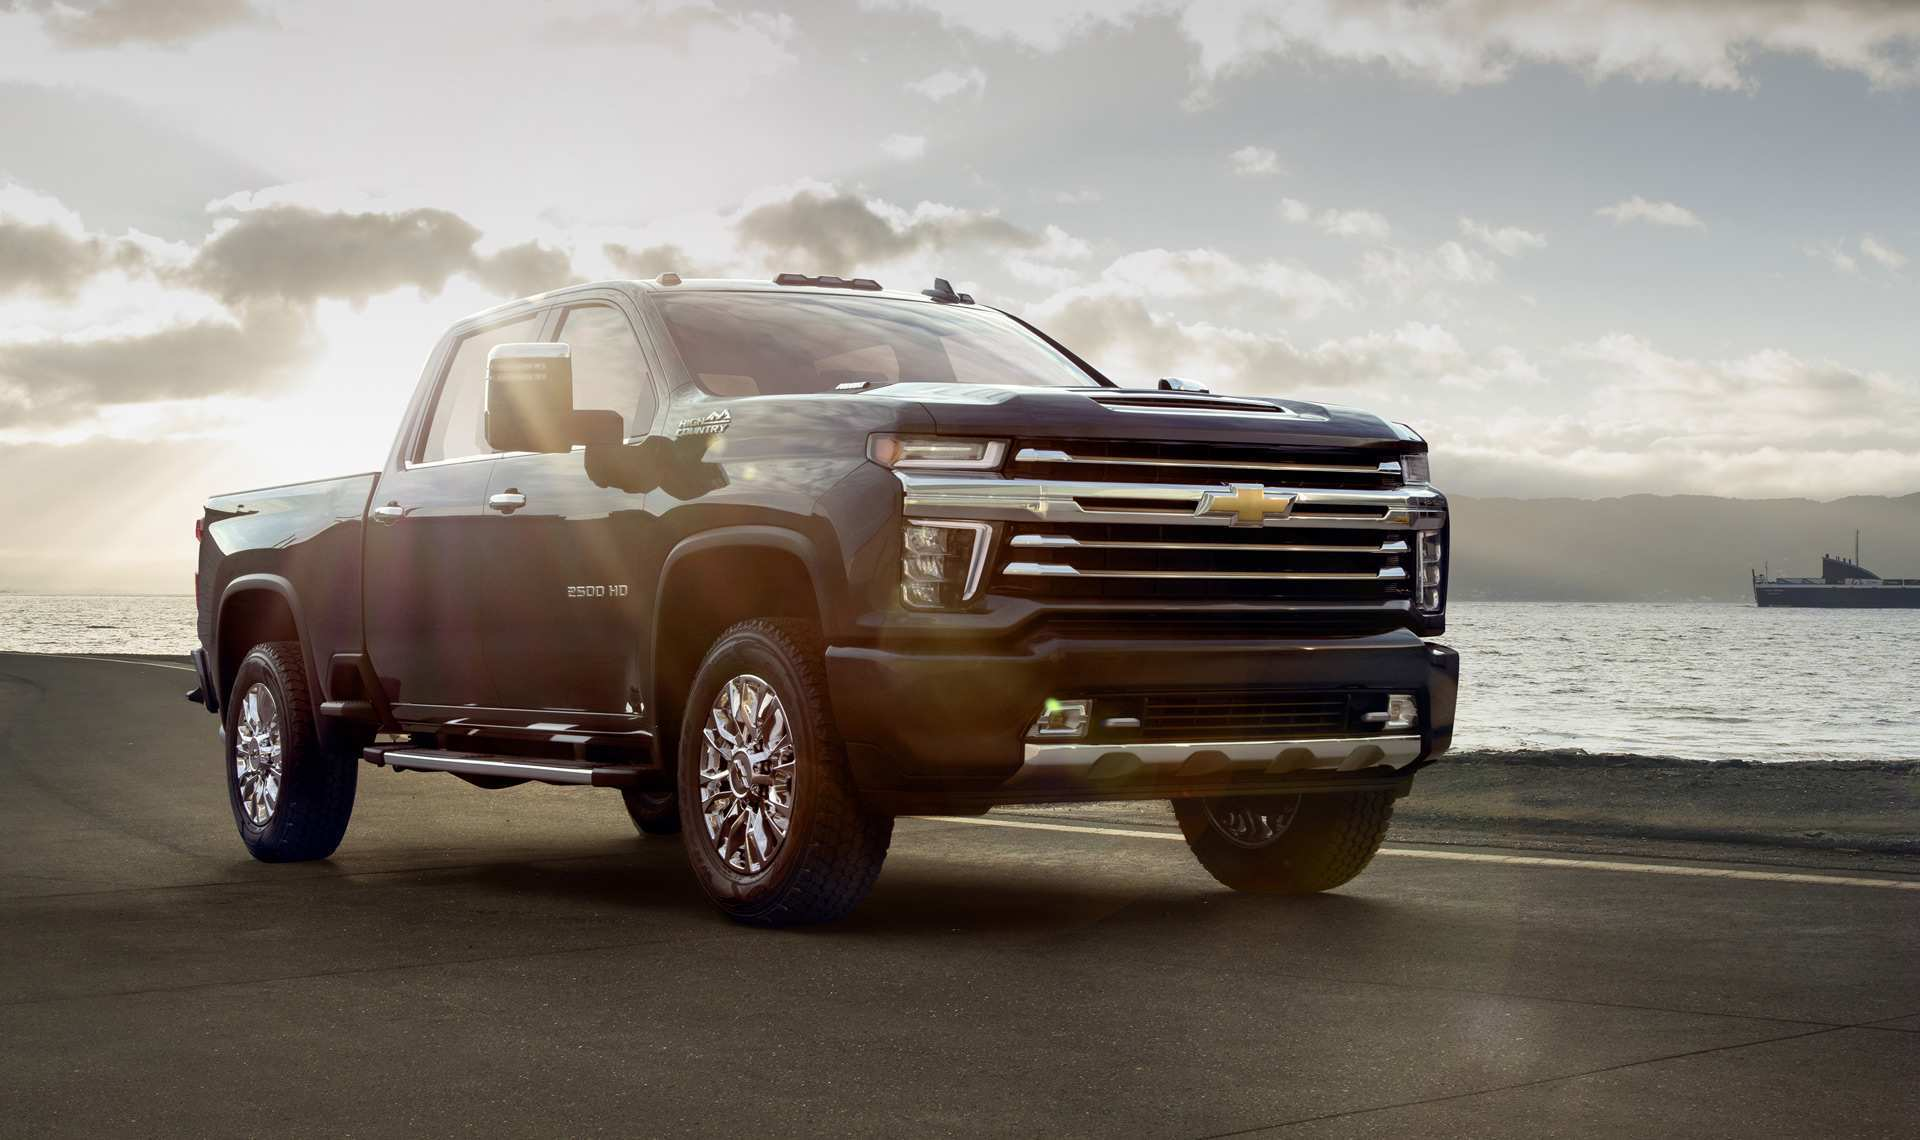 16 All New 2020 Chevy Silverado Hd Style